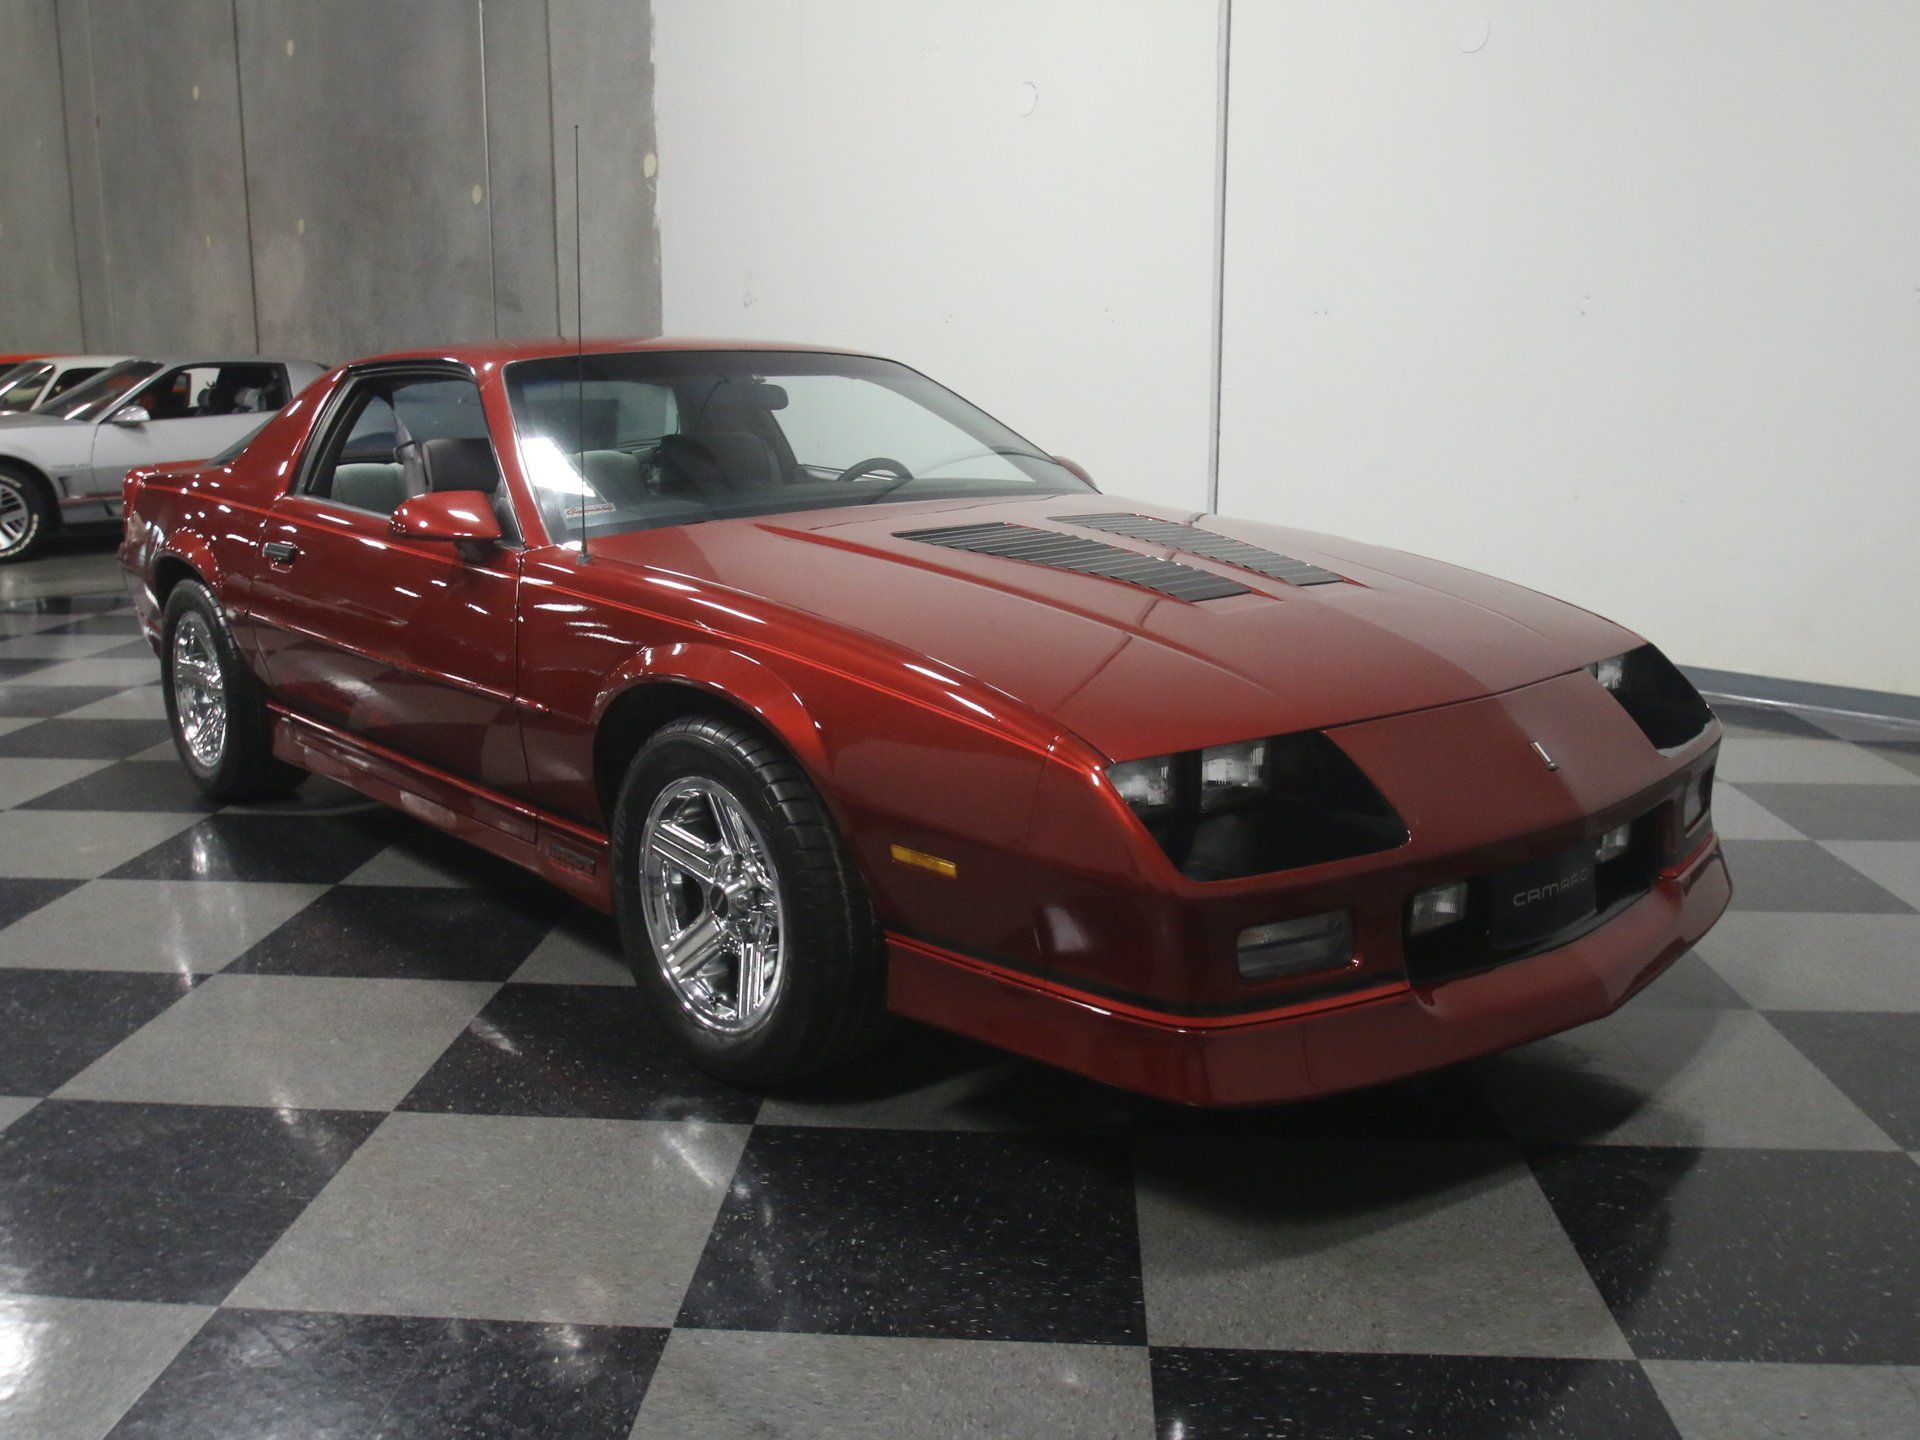 1989 Chevrolet Camaro | Streetside Classics - The Nation's